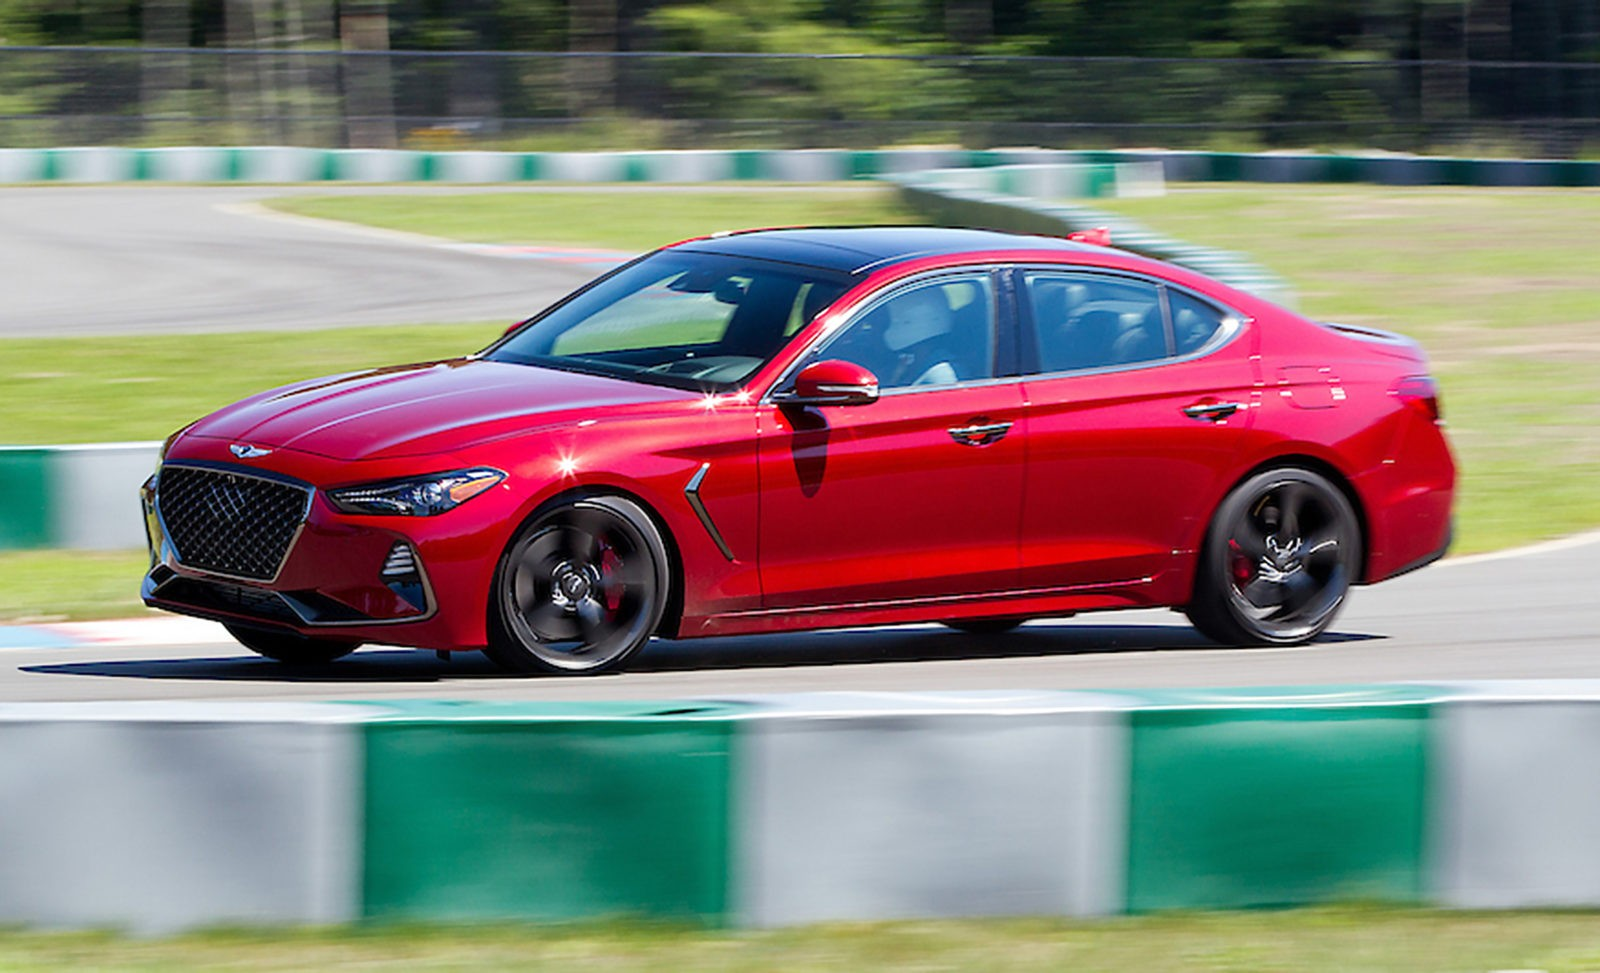 Genesis G70 3.3 Turbo RWD Review